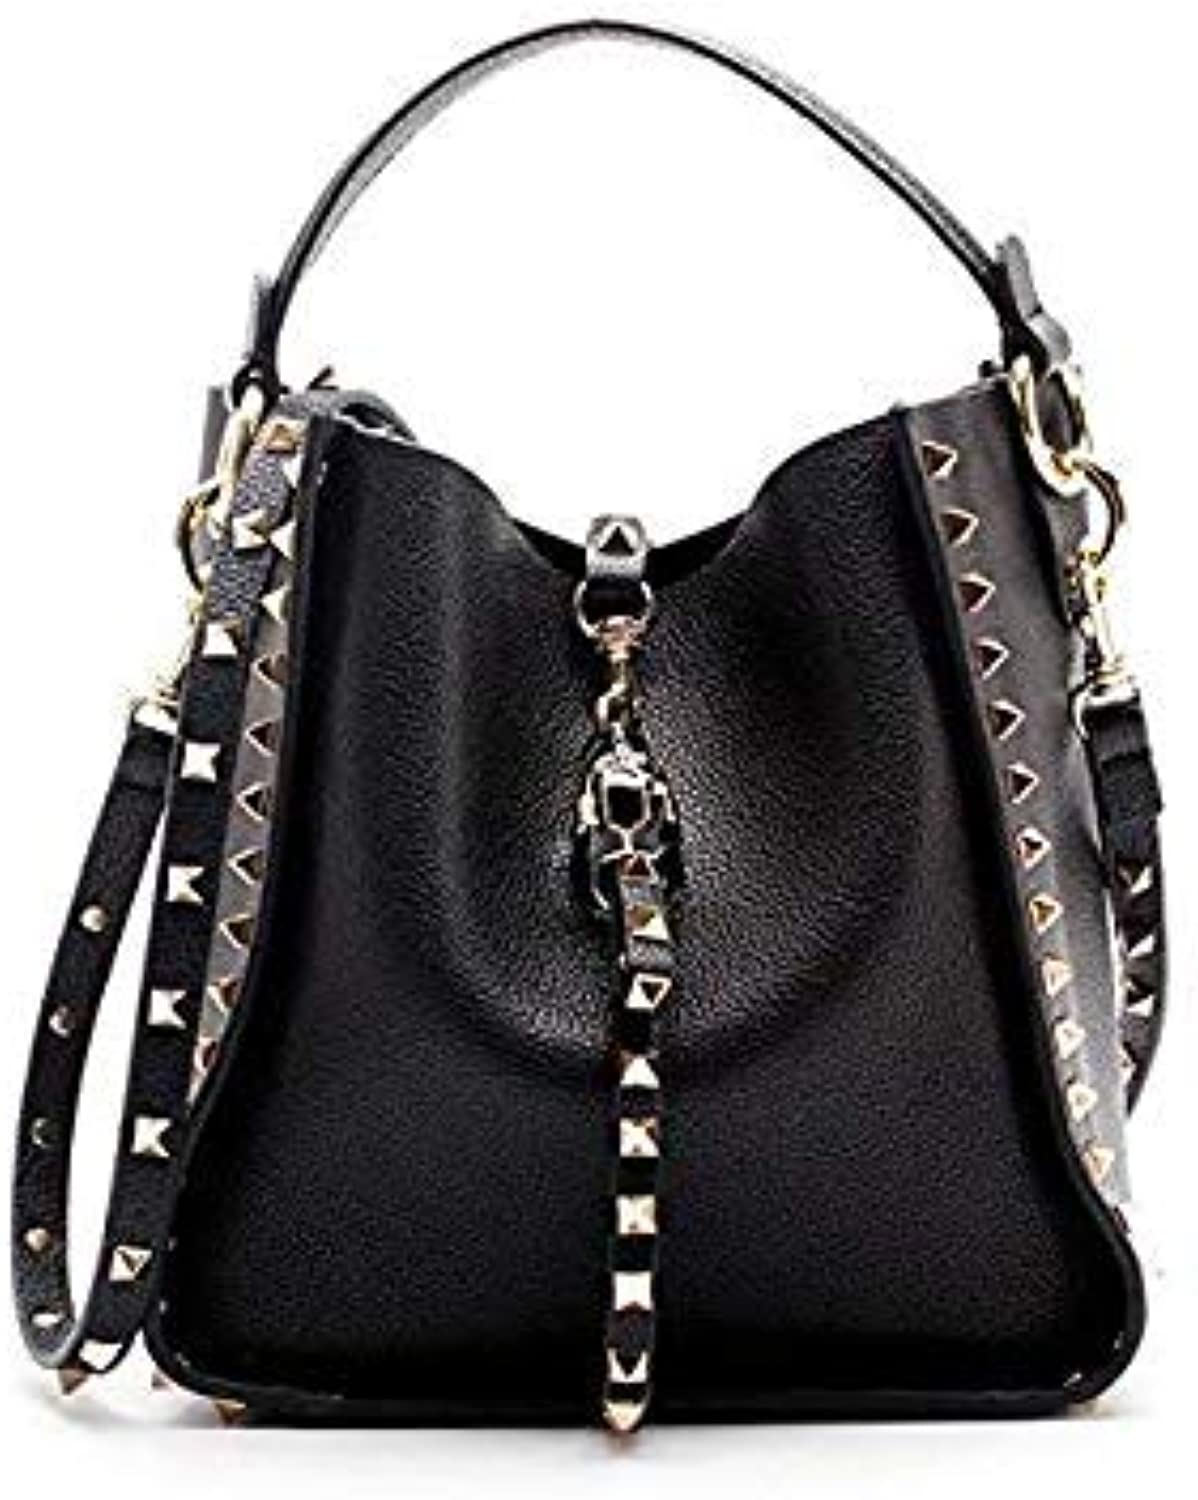 Genuine Leather Famous Brand Rivet Crossbody Bags for Women Messenger Shoulder Bag Luxury Handbags Women Bags Designer Female color Black Size 19x13x21cm